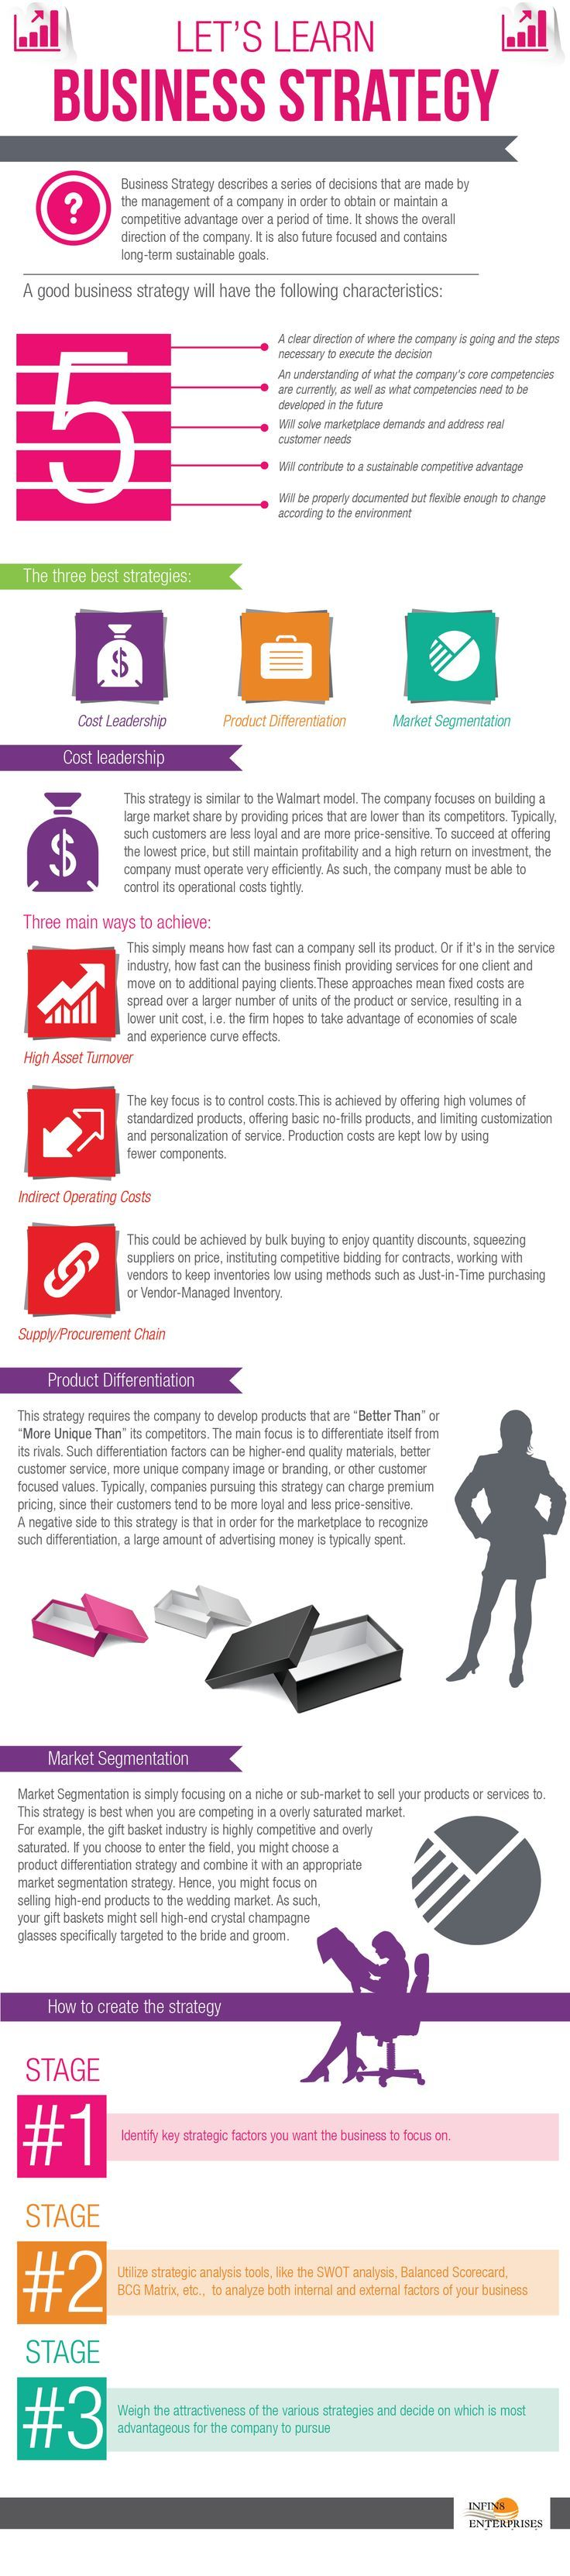 Business Strategy Infographic - Cost Leadership, Product Differentiation, and Market Segmentation  http://www.infin8llc.com